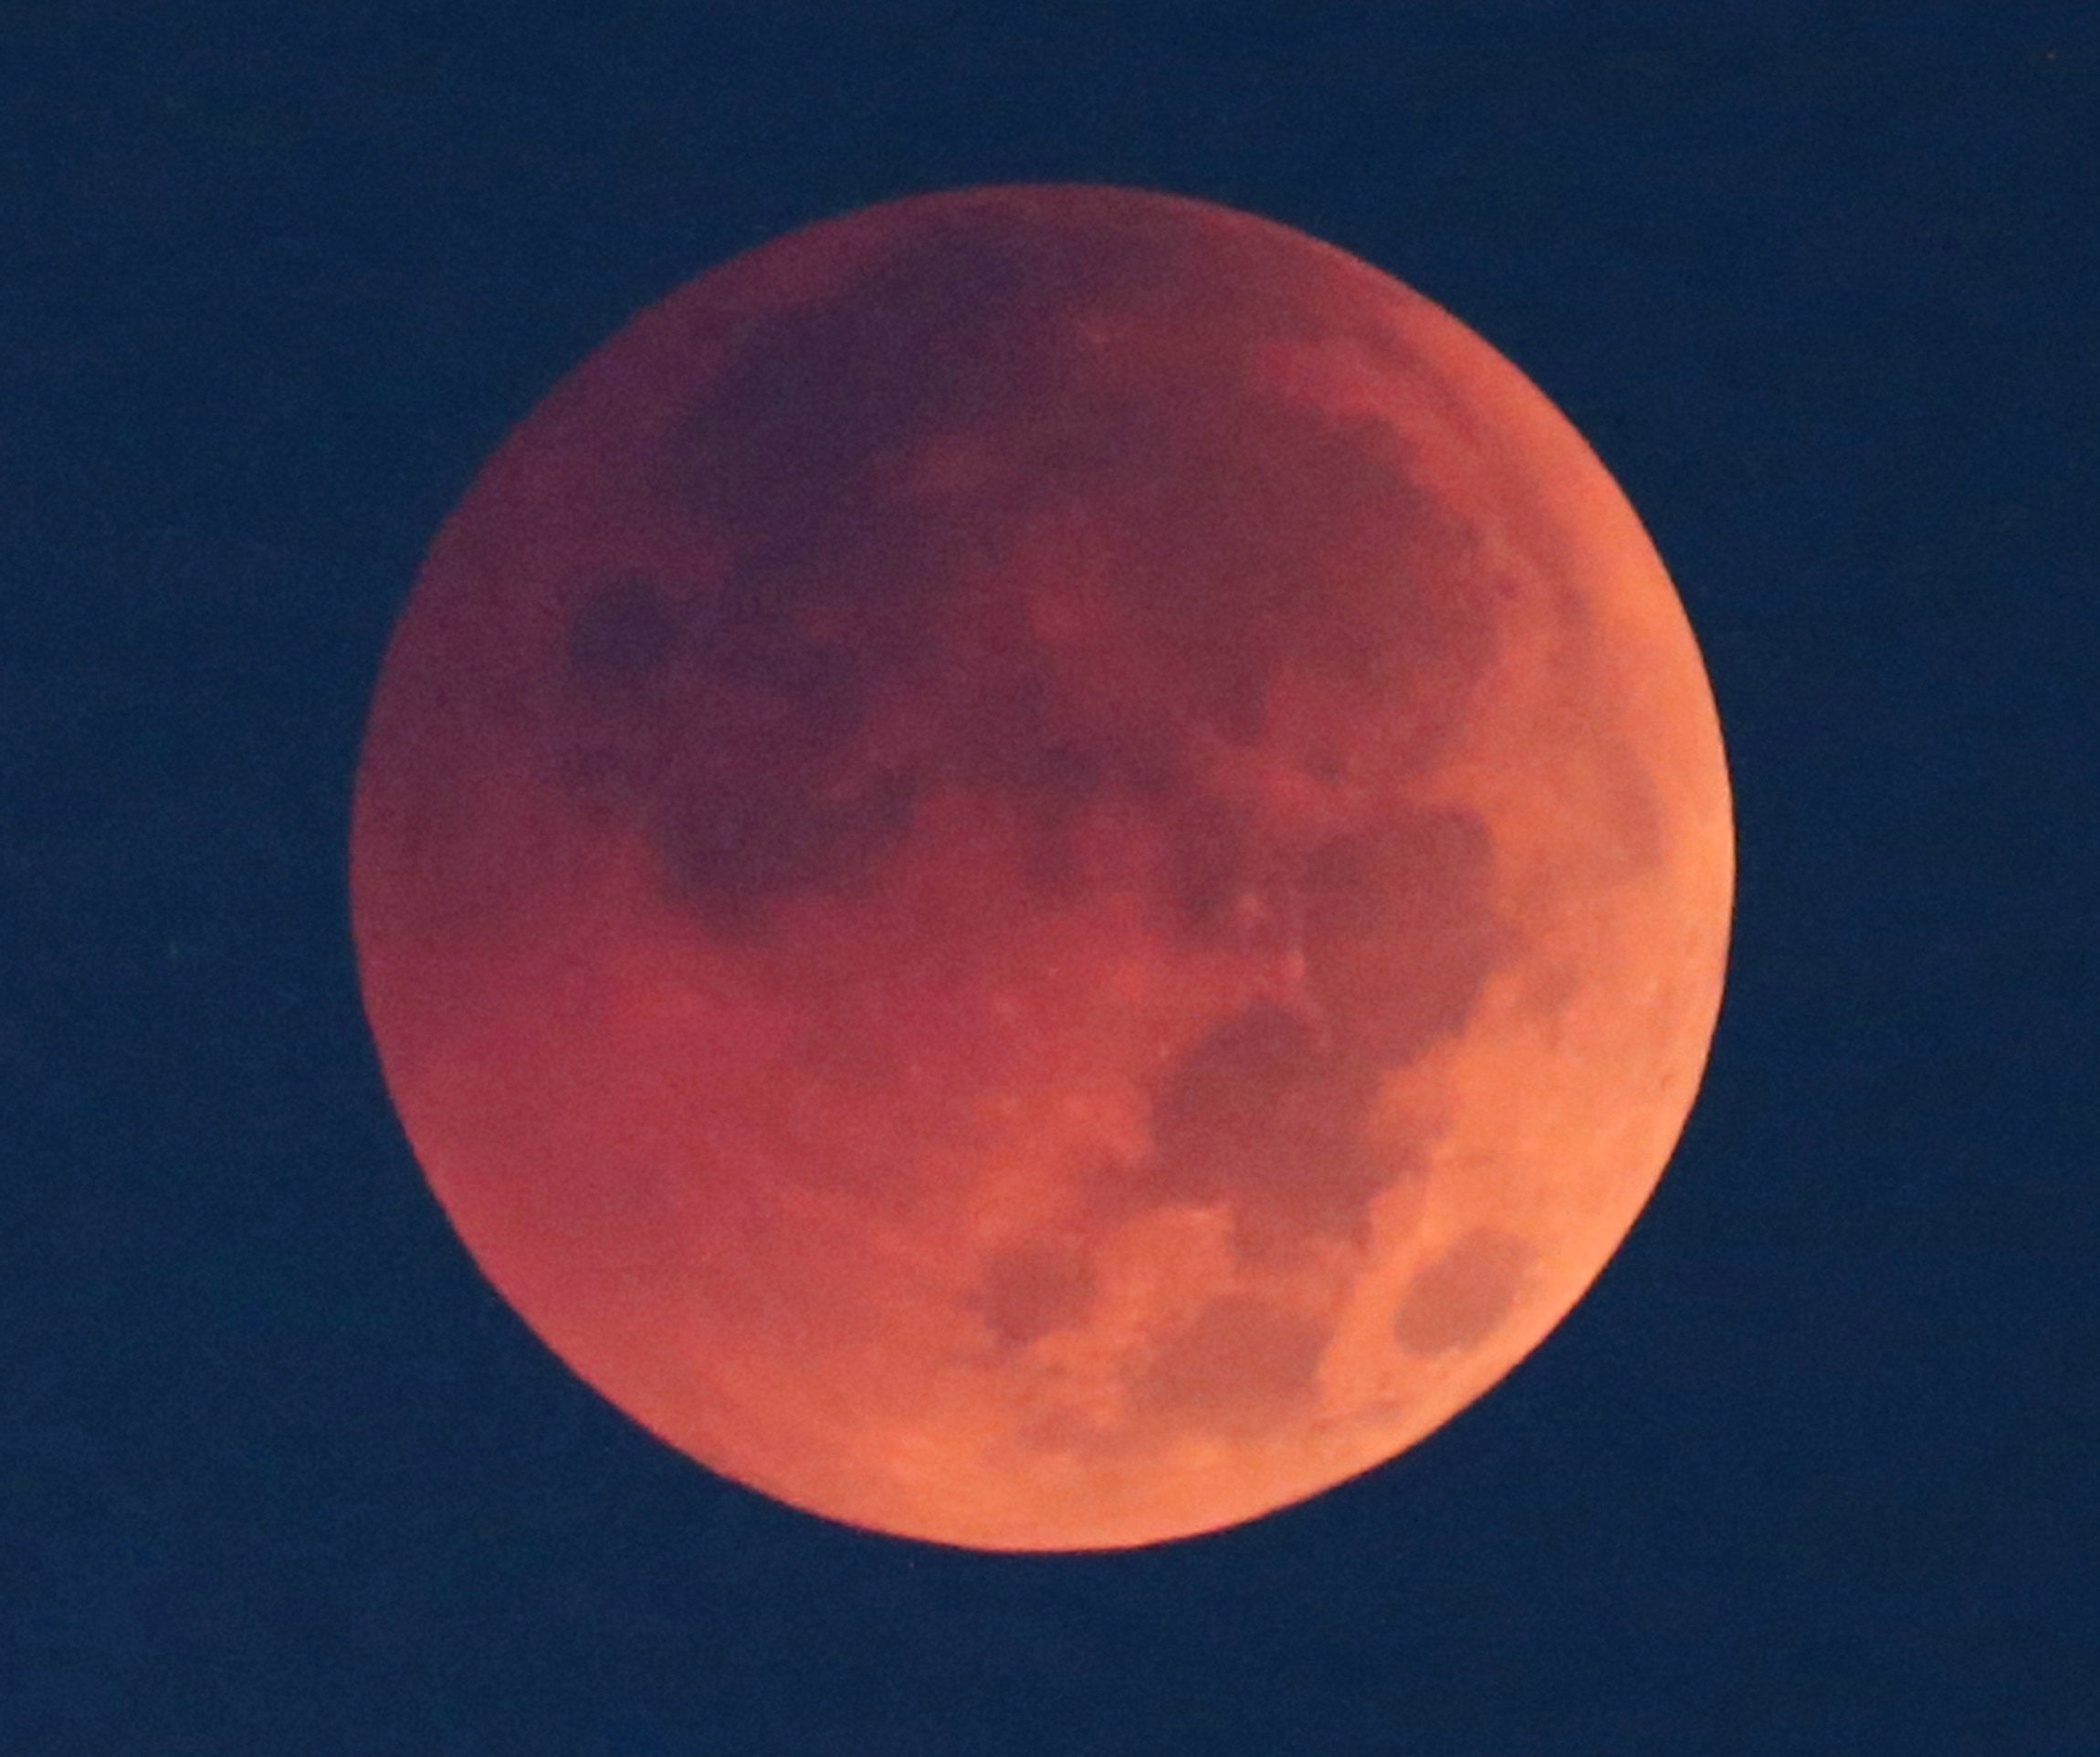 Lunar eclipse: Blood moon myths from around the world | The